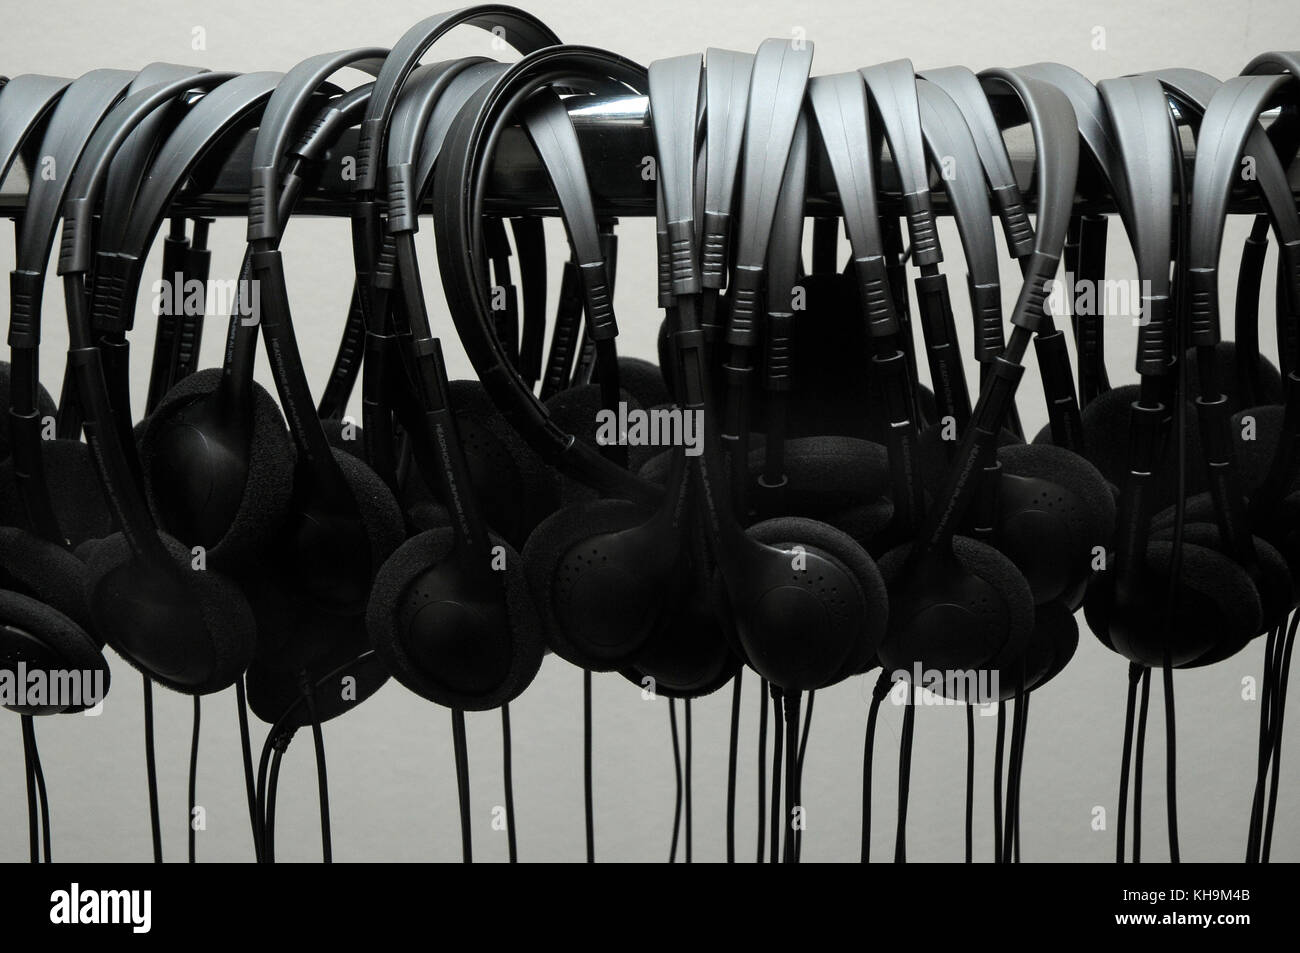 headphones - Stock Image